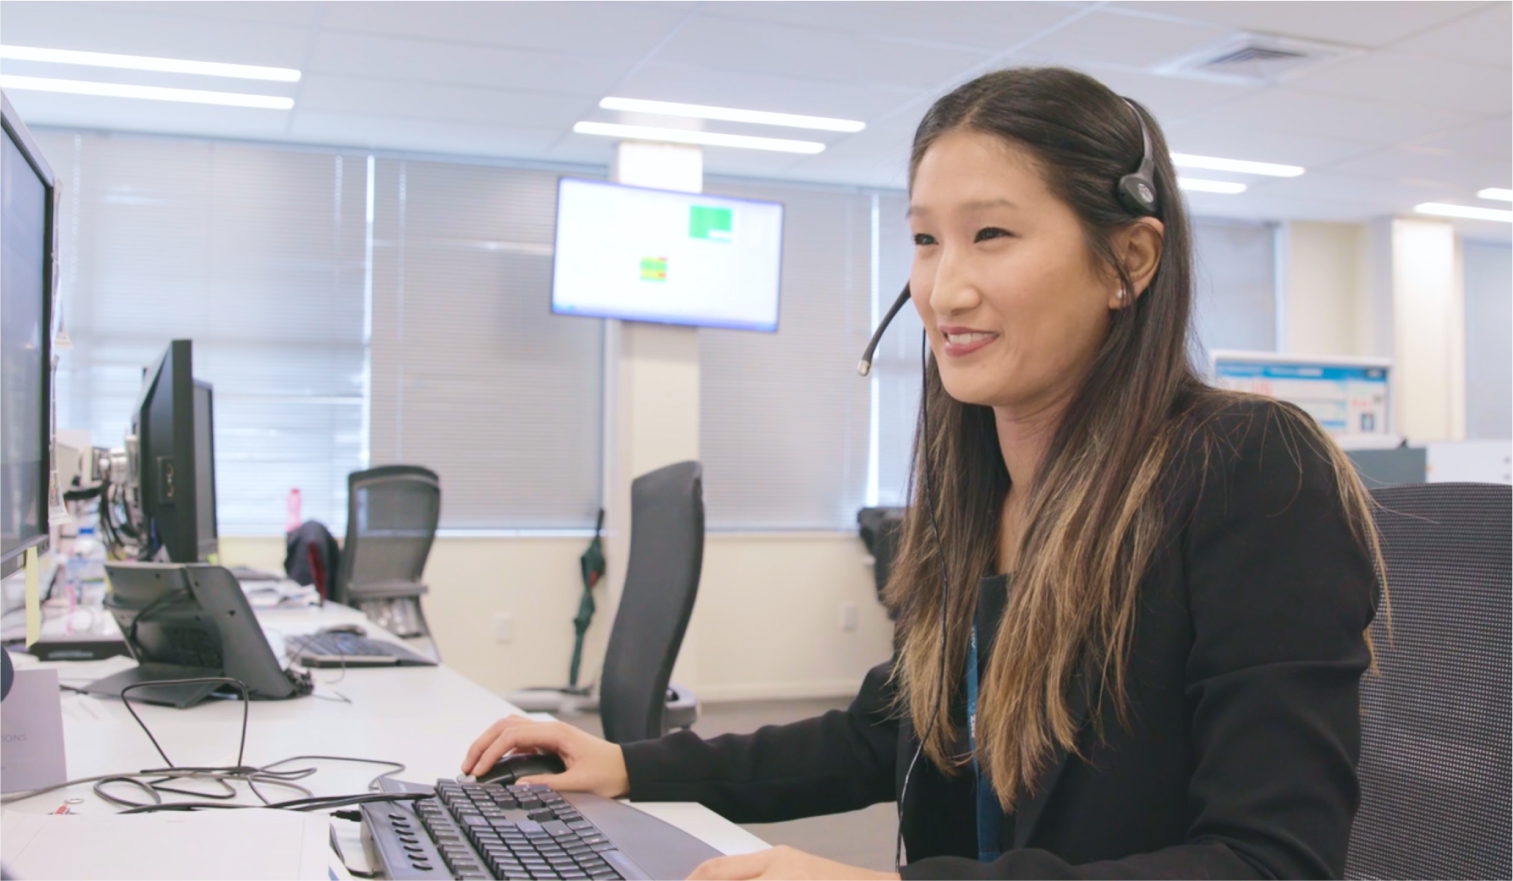 Female bank support staff member working at her computer talking a call